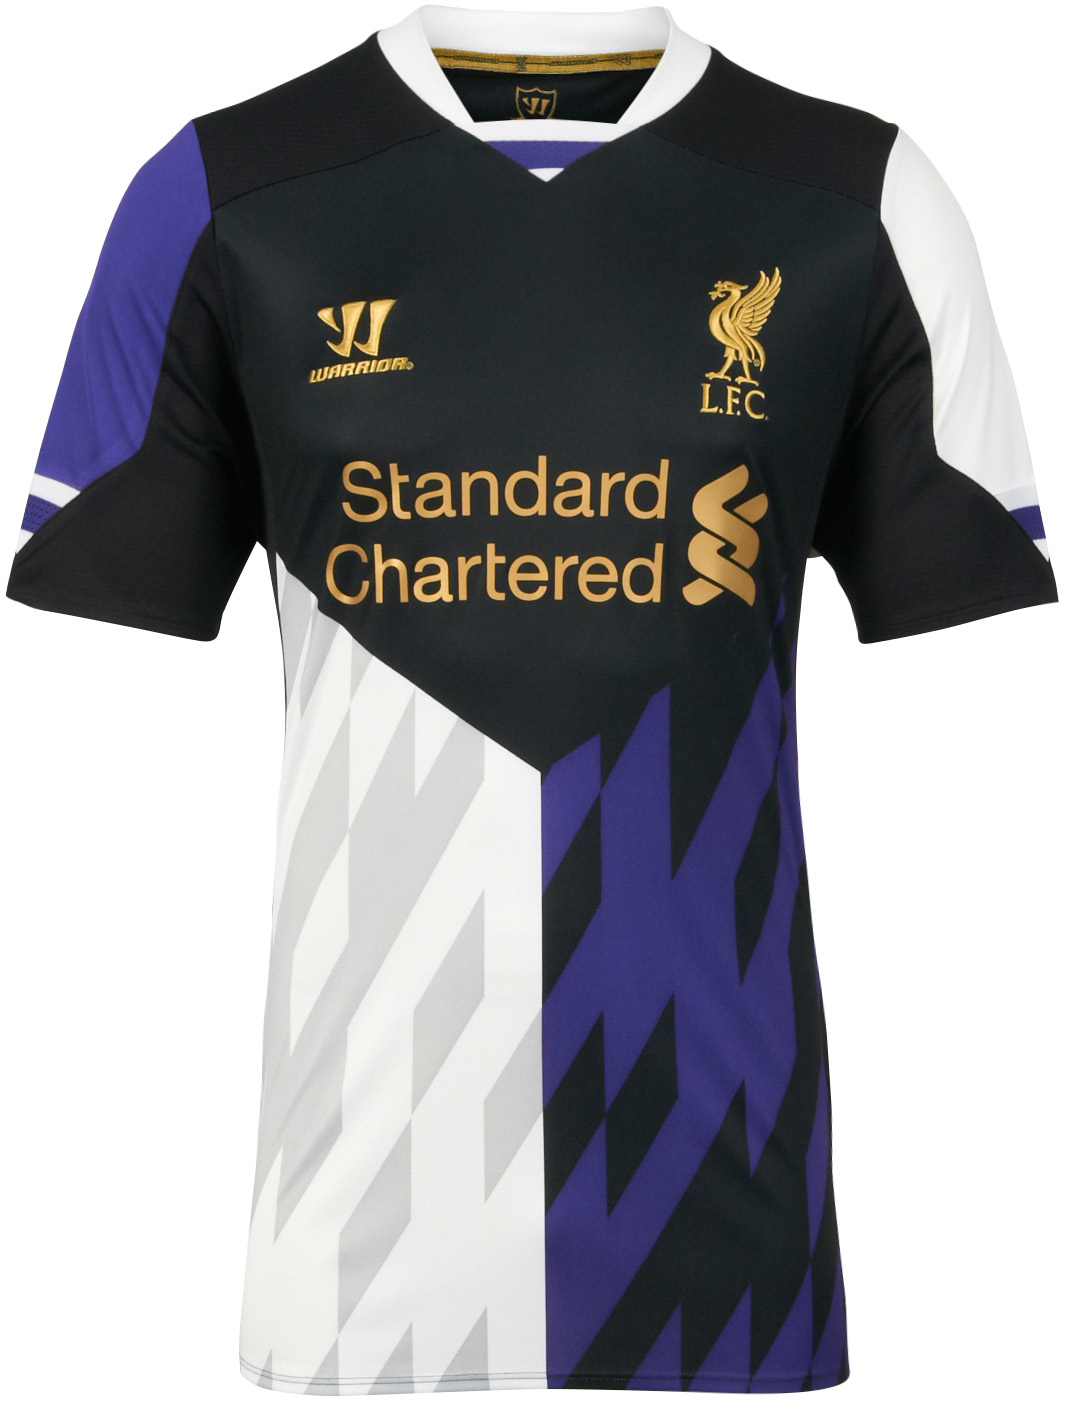 892893c09 Leaked Liverpool kits for next season look very classy indeed ...